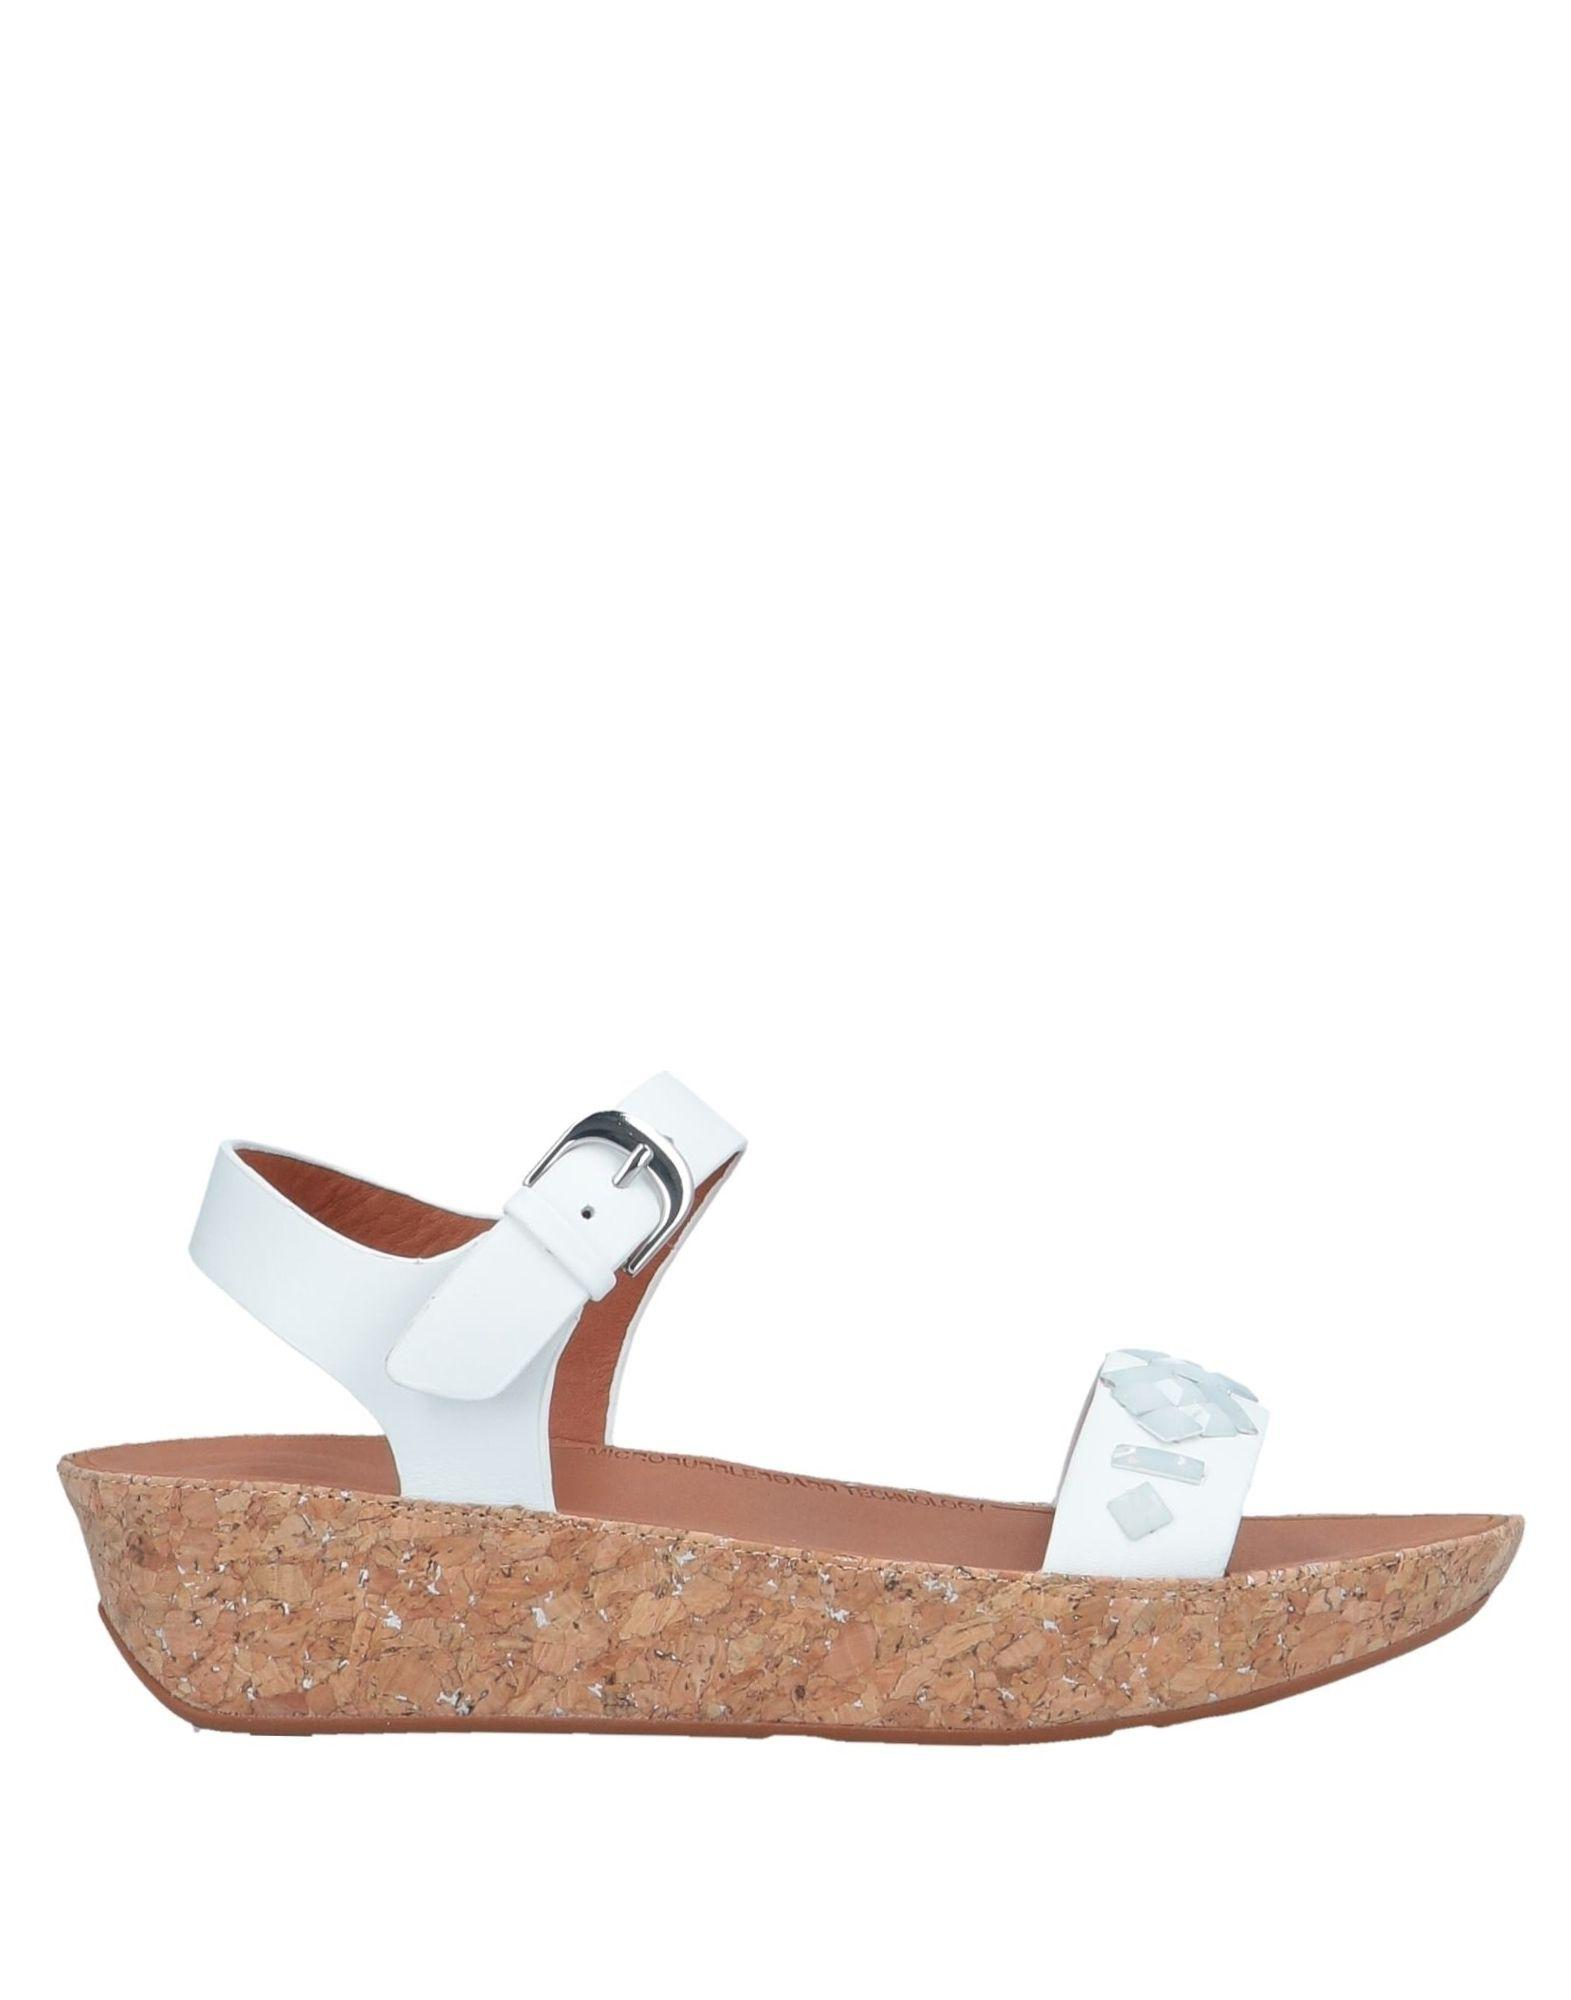 d155e1f50650f Fitflop Sandals in White - Save 67% - Lyst